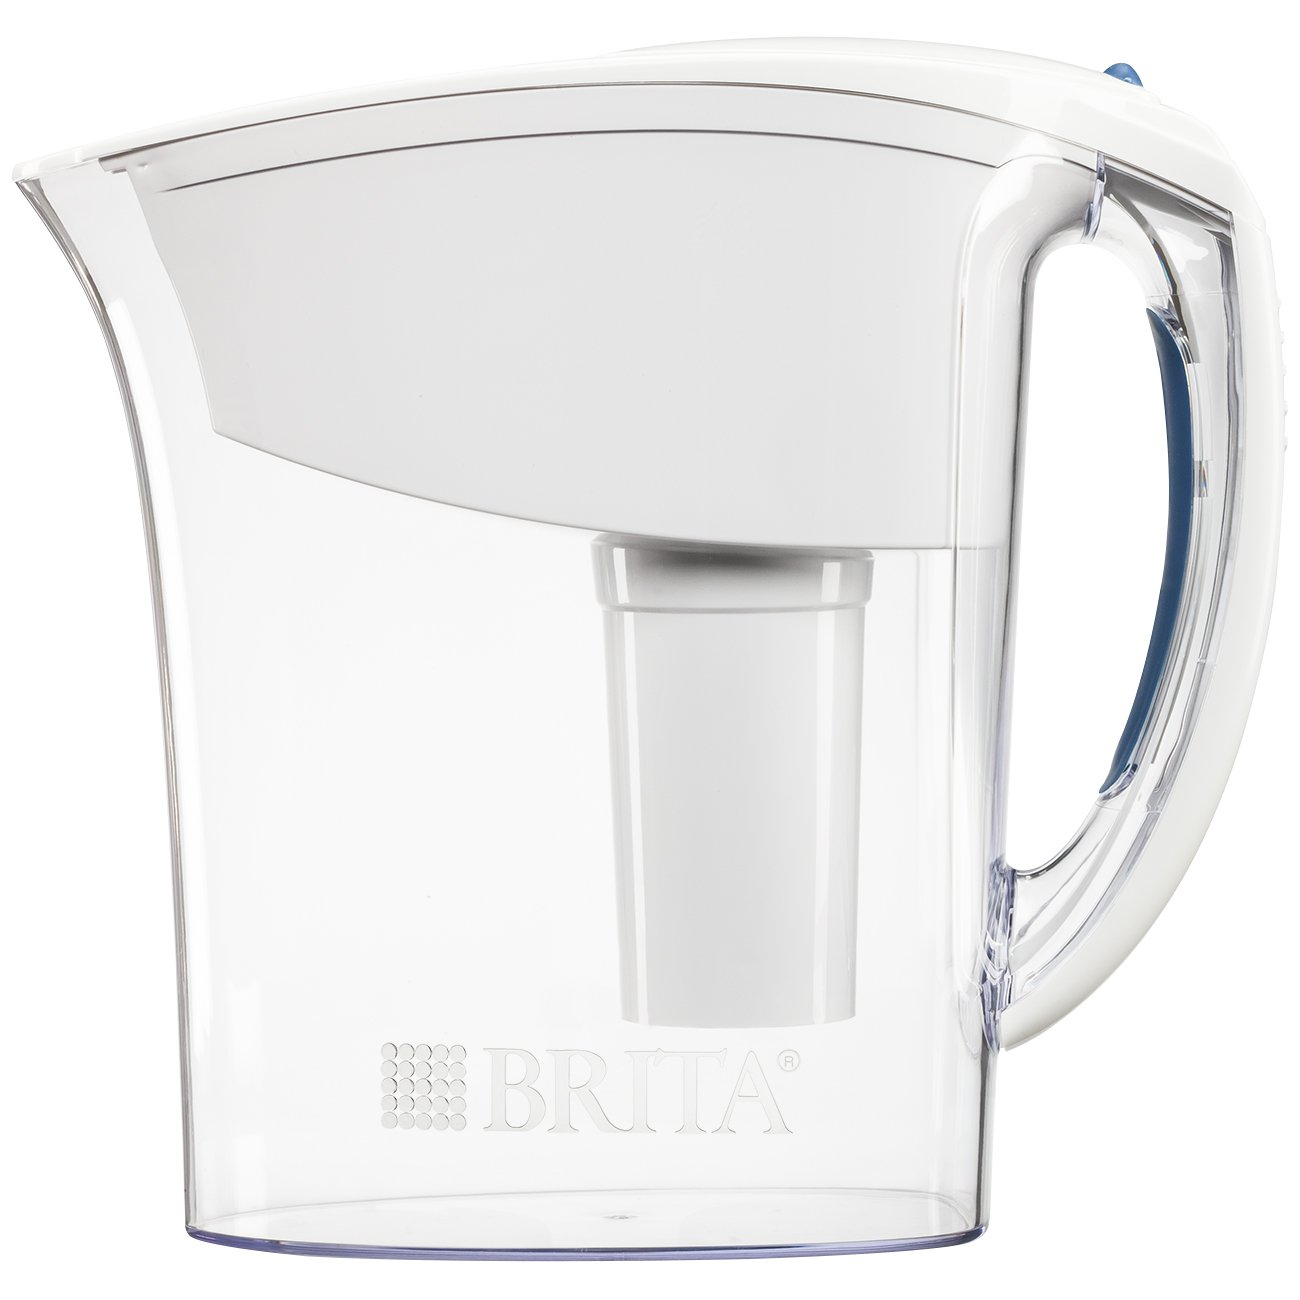 Brita Small 6 Cup Water Filter Pitcher with 1 Standard Filter